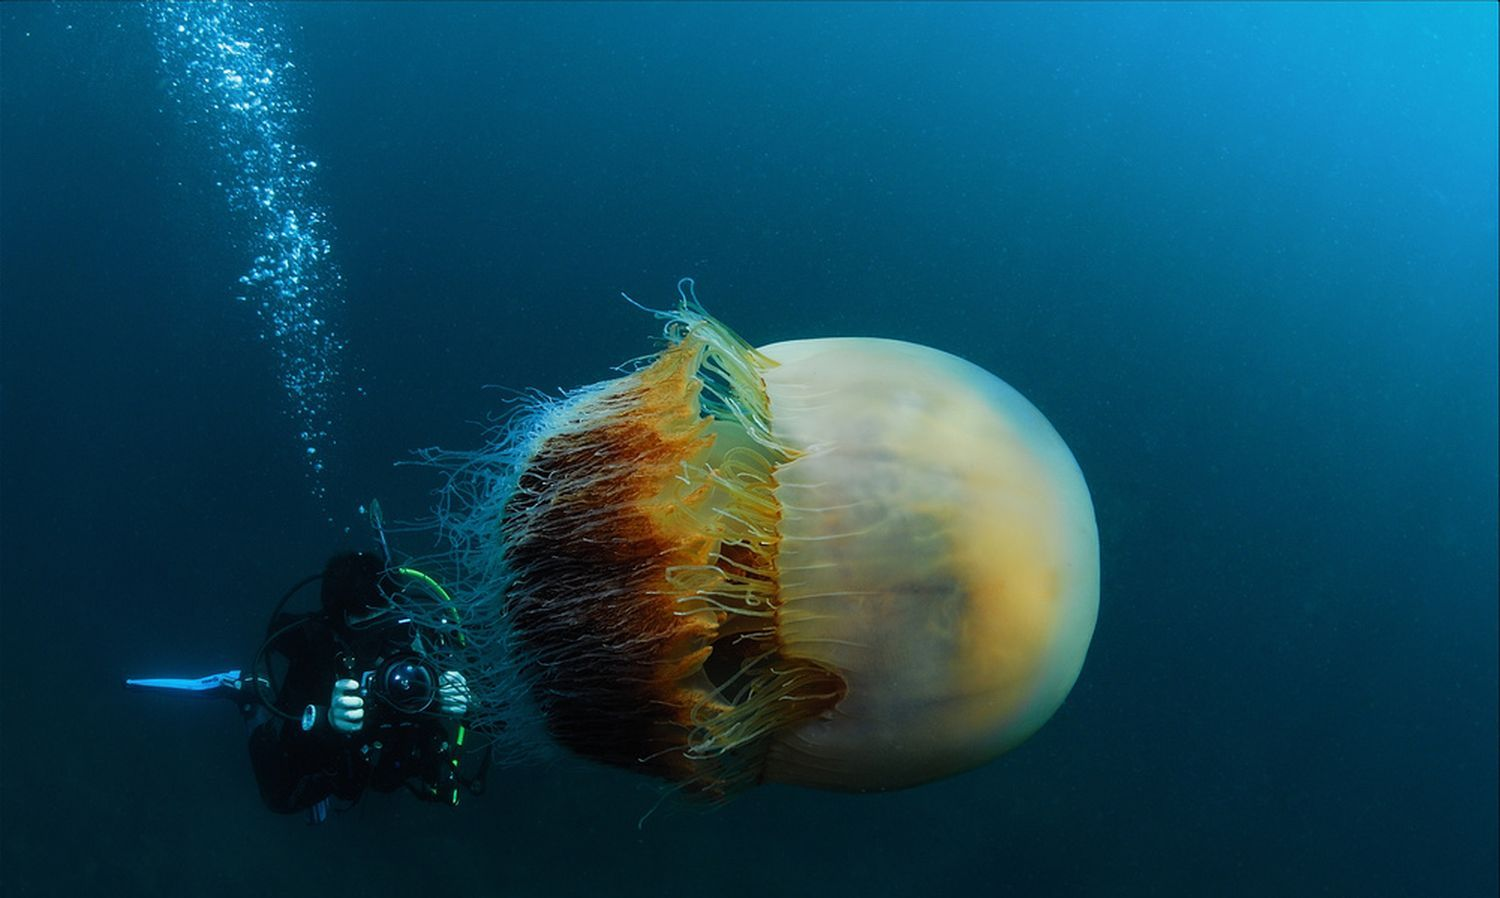 nomura a giant ocean jellyfish over two meters in diameter and